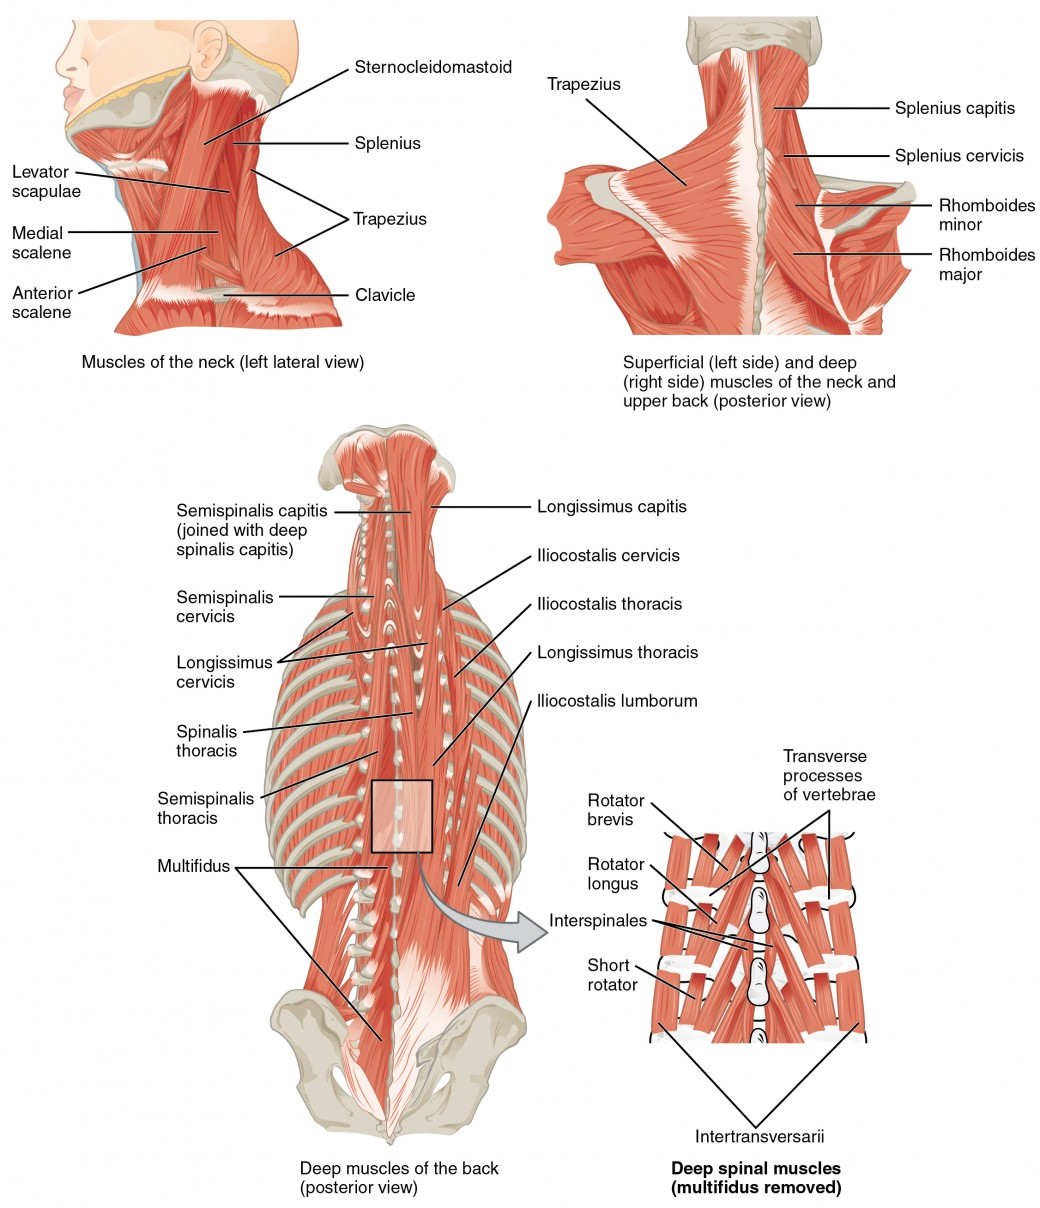 Axial Muscles of the Head, Neck, and Back | Anatomy and Physiology